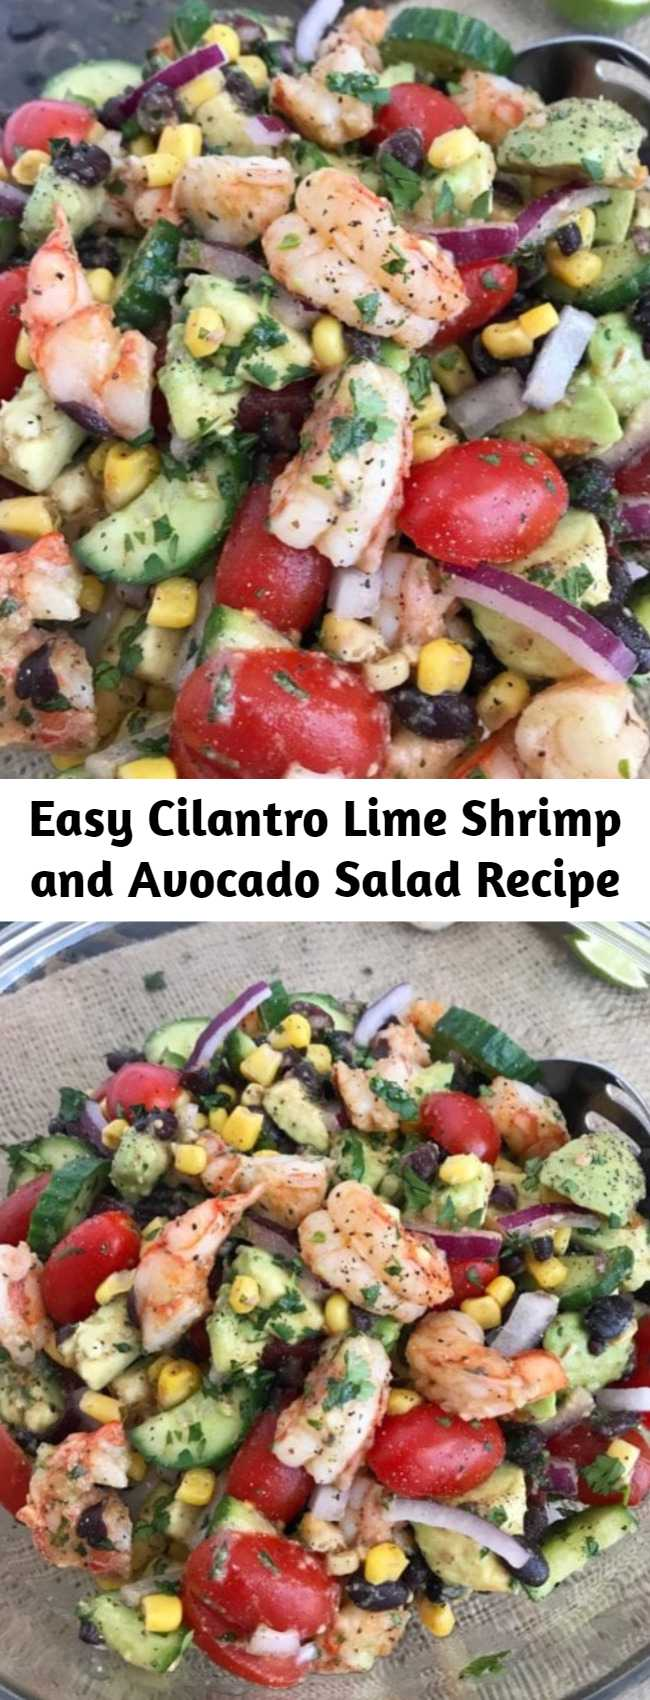 Easy Cilantro Lime Shrimp and Avocado Salad Recipe - a salad packed full of vegetables that will become a go-to meal or dish in your kitchen from the moment you try it! This salad is very easy to make, light and refreshing in flavor, and can be made in minutes. The perfect low-calorie meal or side dish if you're looking for something simple and quick. #salad #shrimp #avocado #healthy